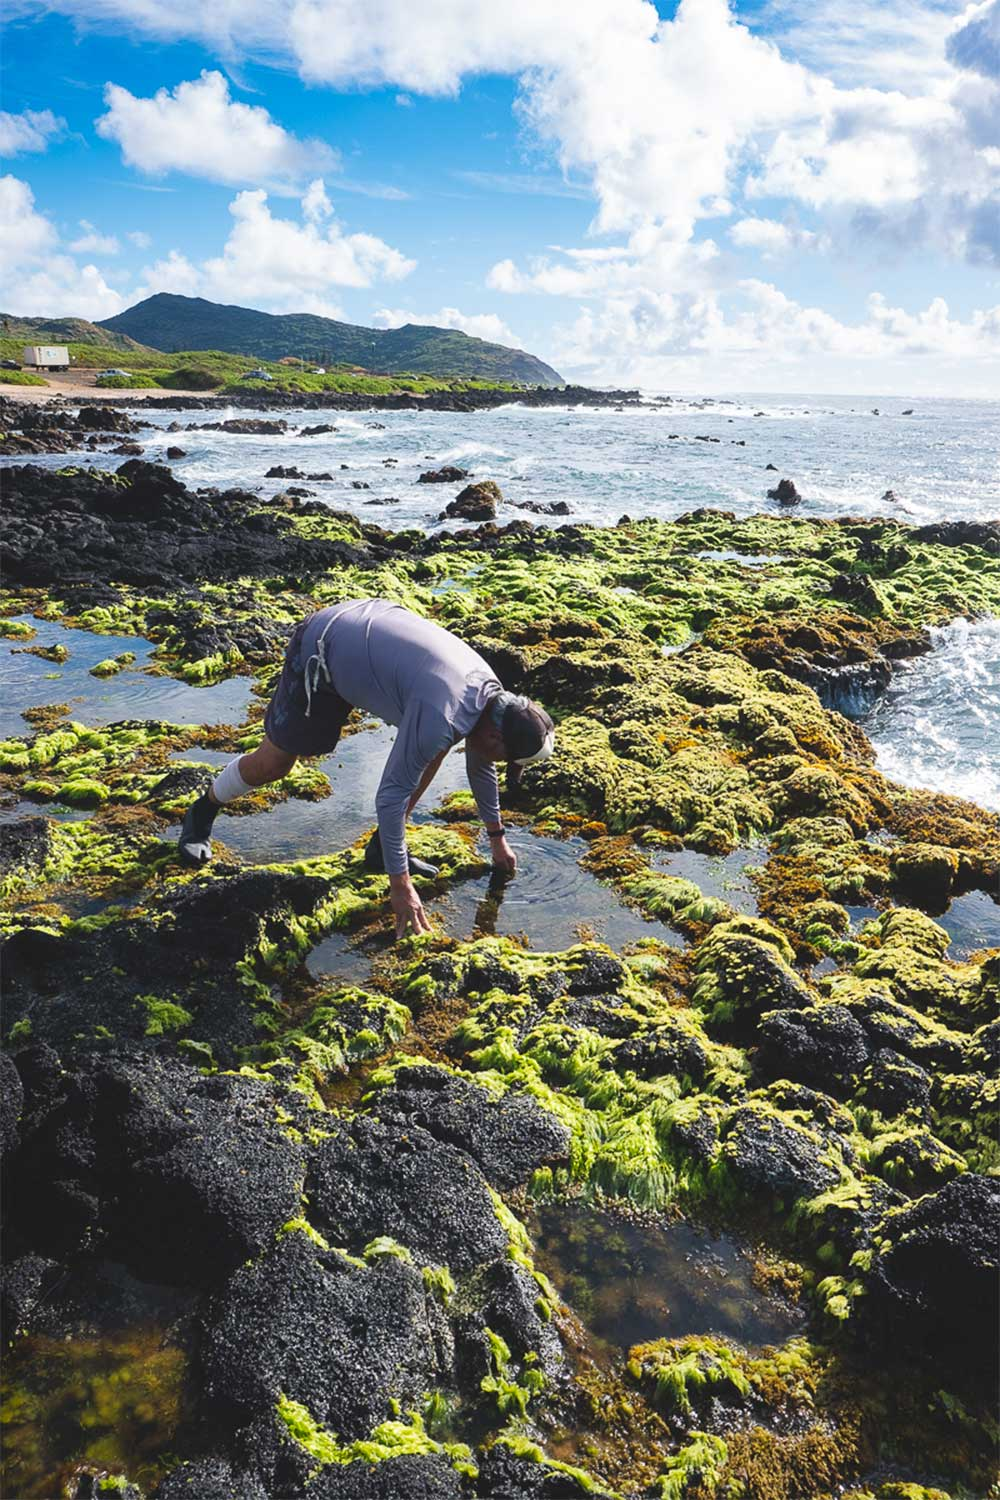 Man standing on a sea moss covered point near the ocean bending over to touch the water